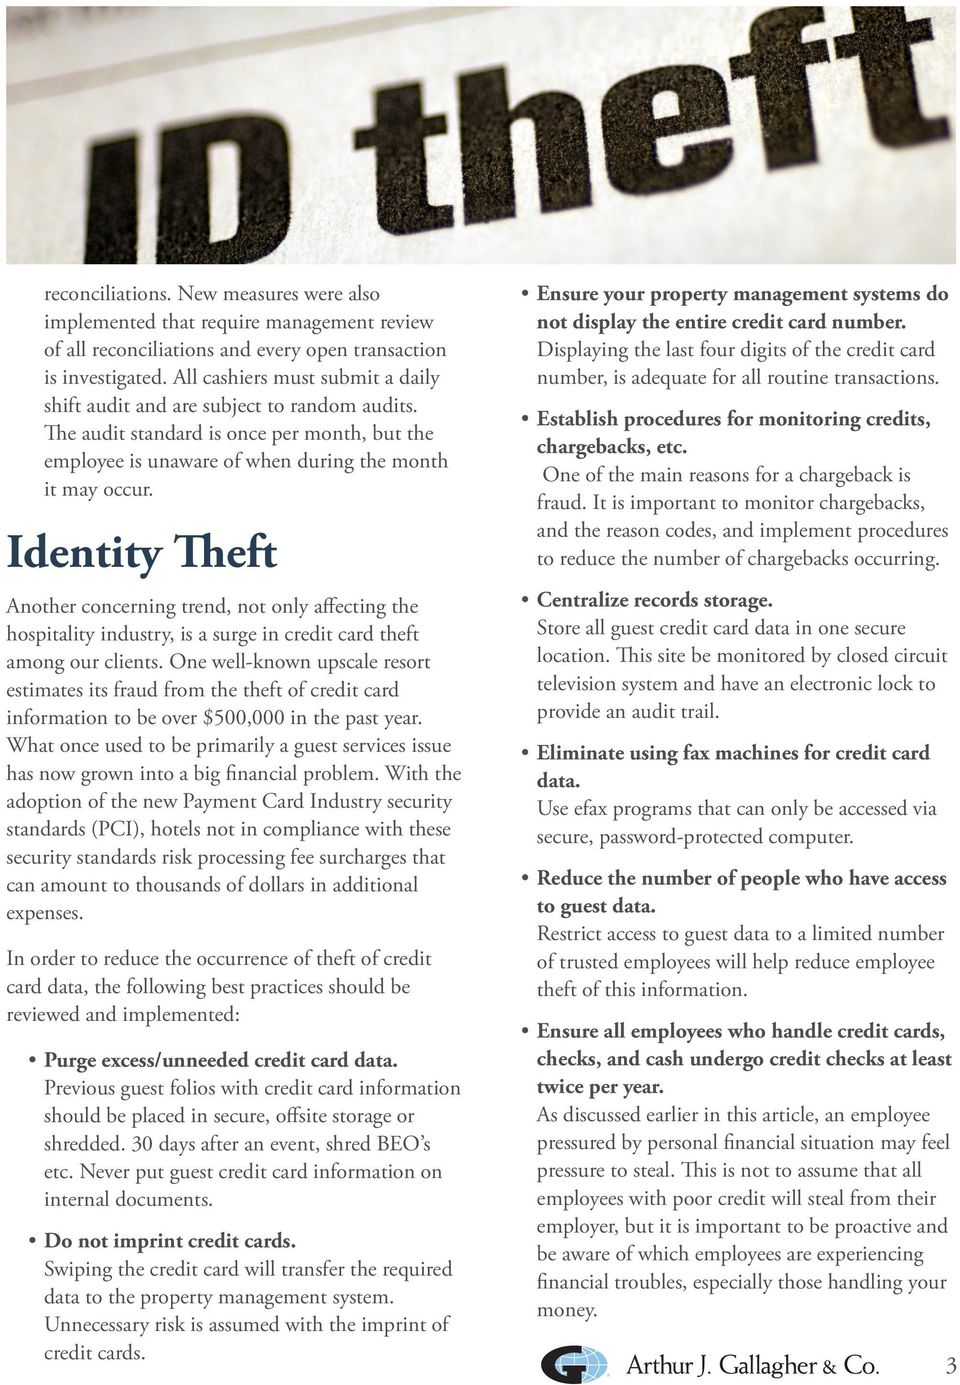 Employee Theft, Fraud and How Hotels Can Manage the Risks  Gallagher